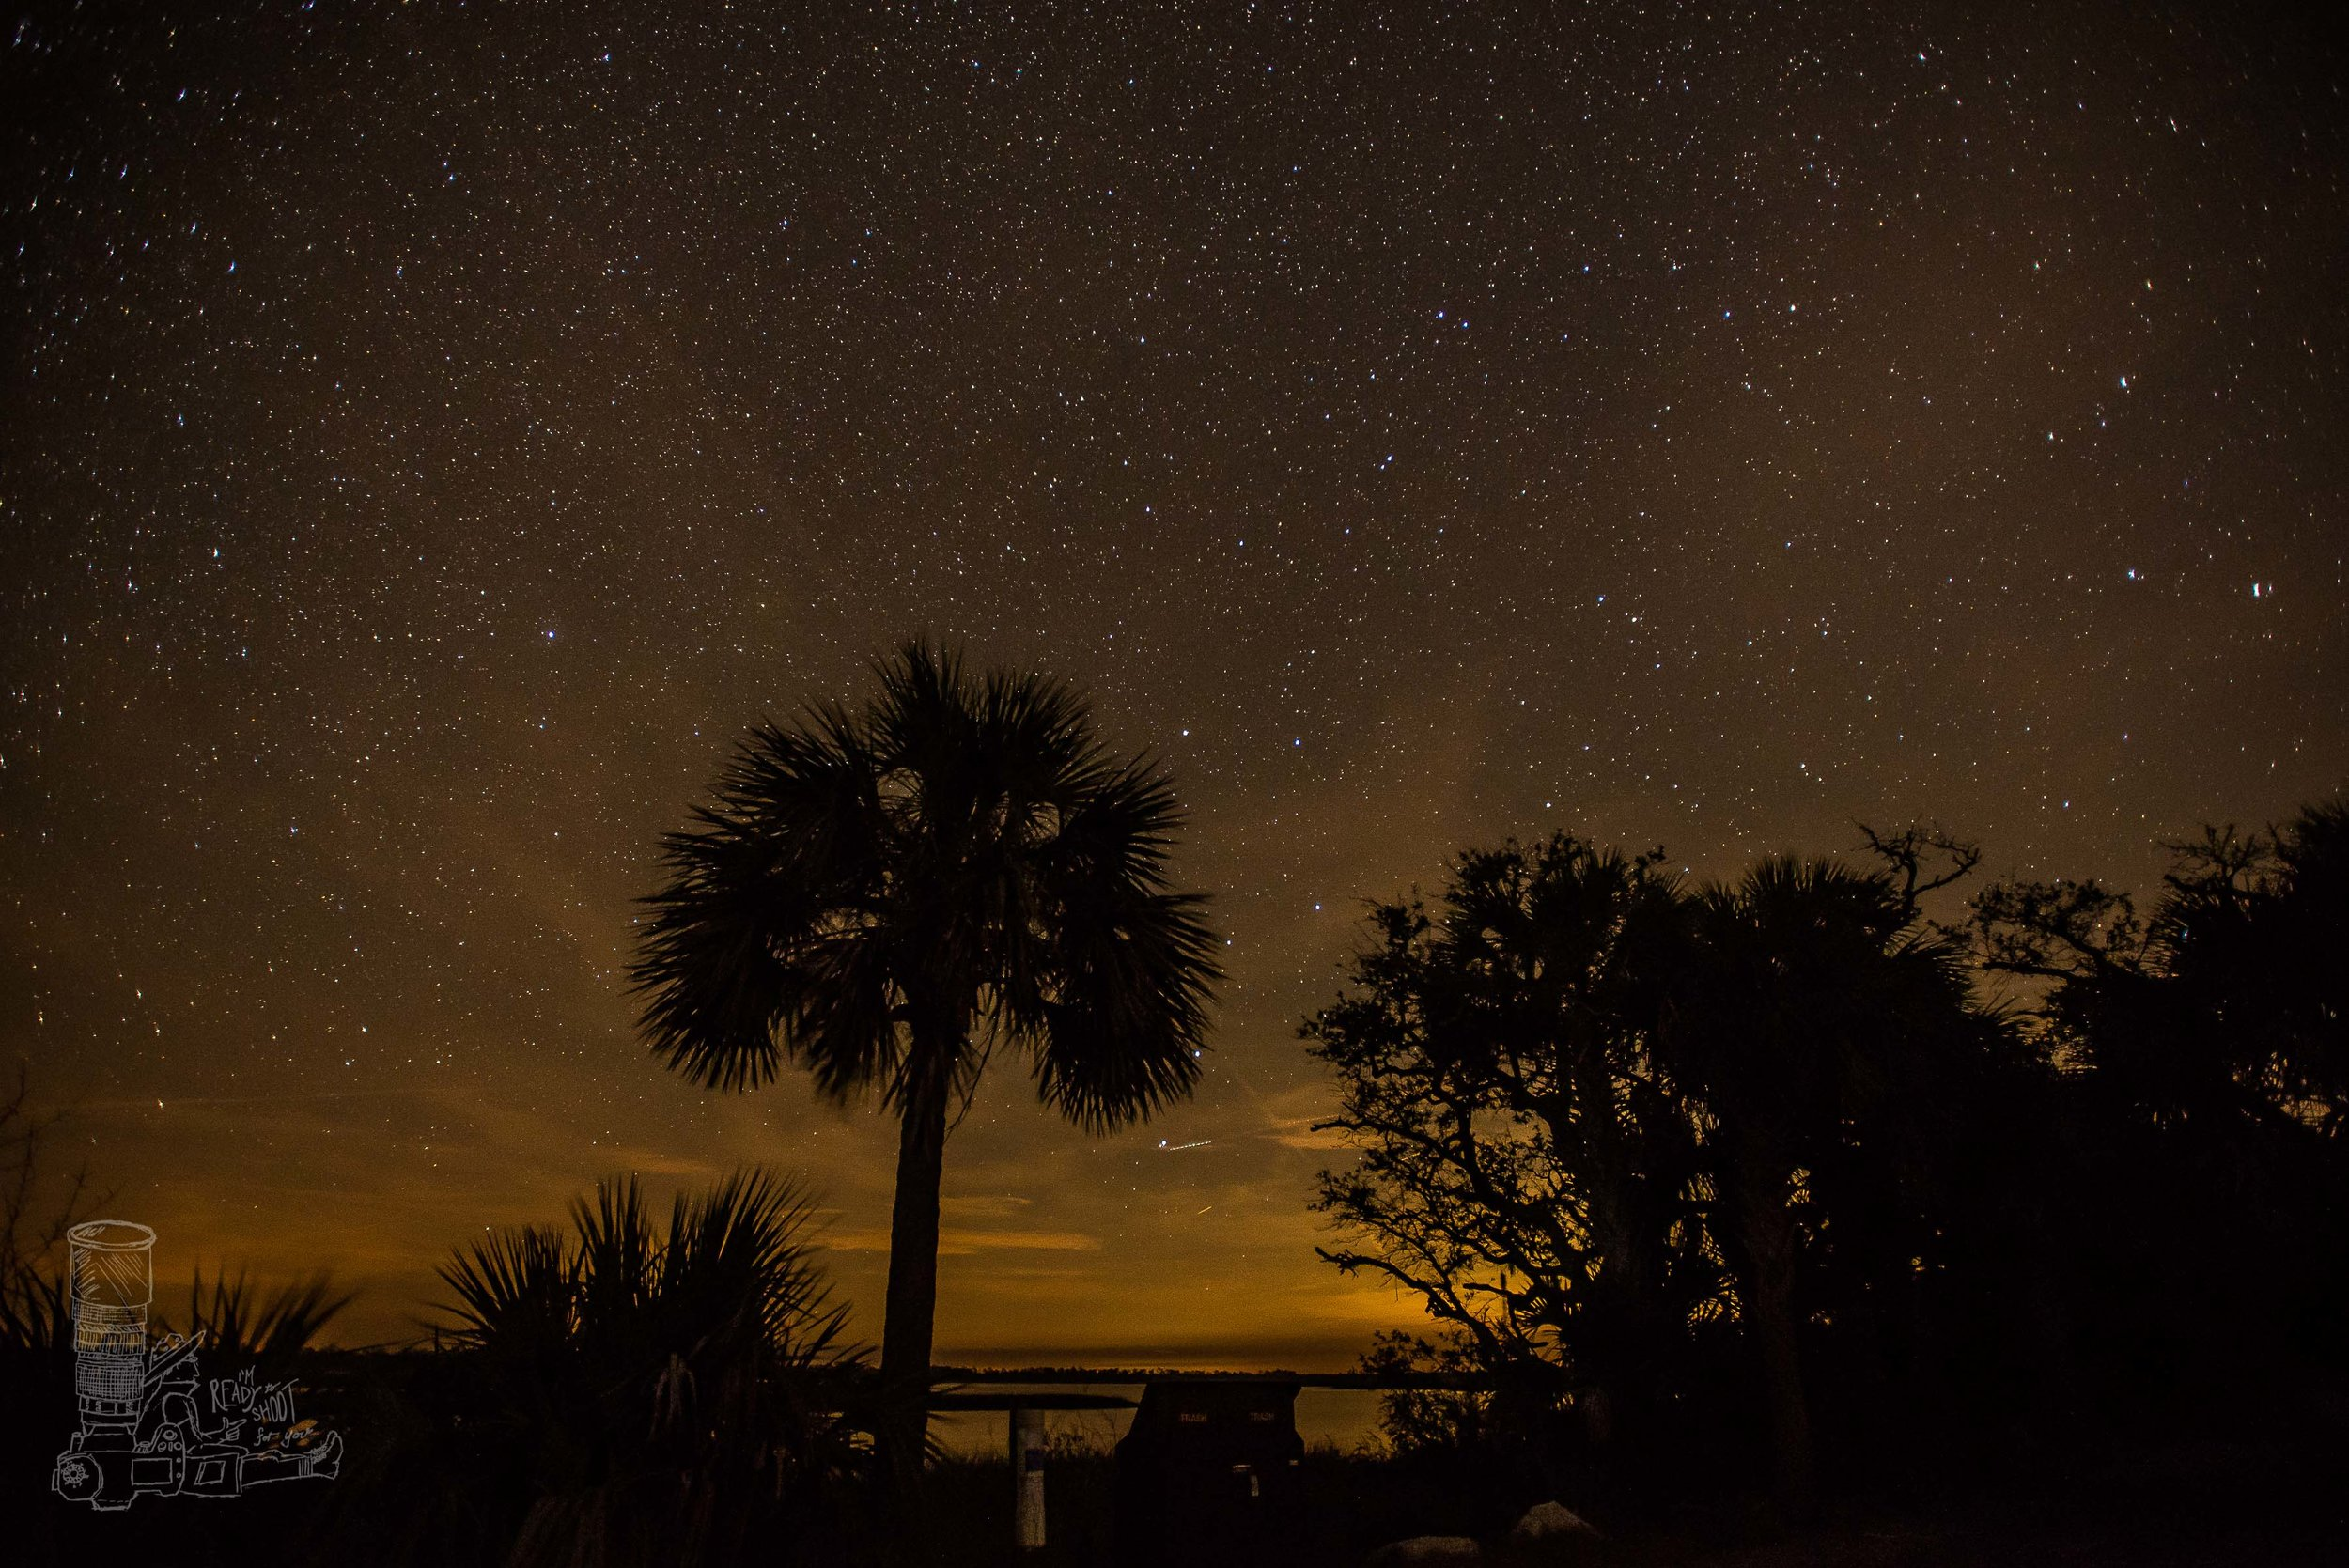 Night Sky of the Suwannee